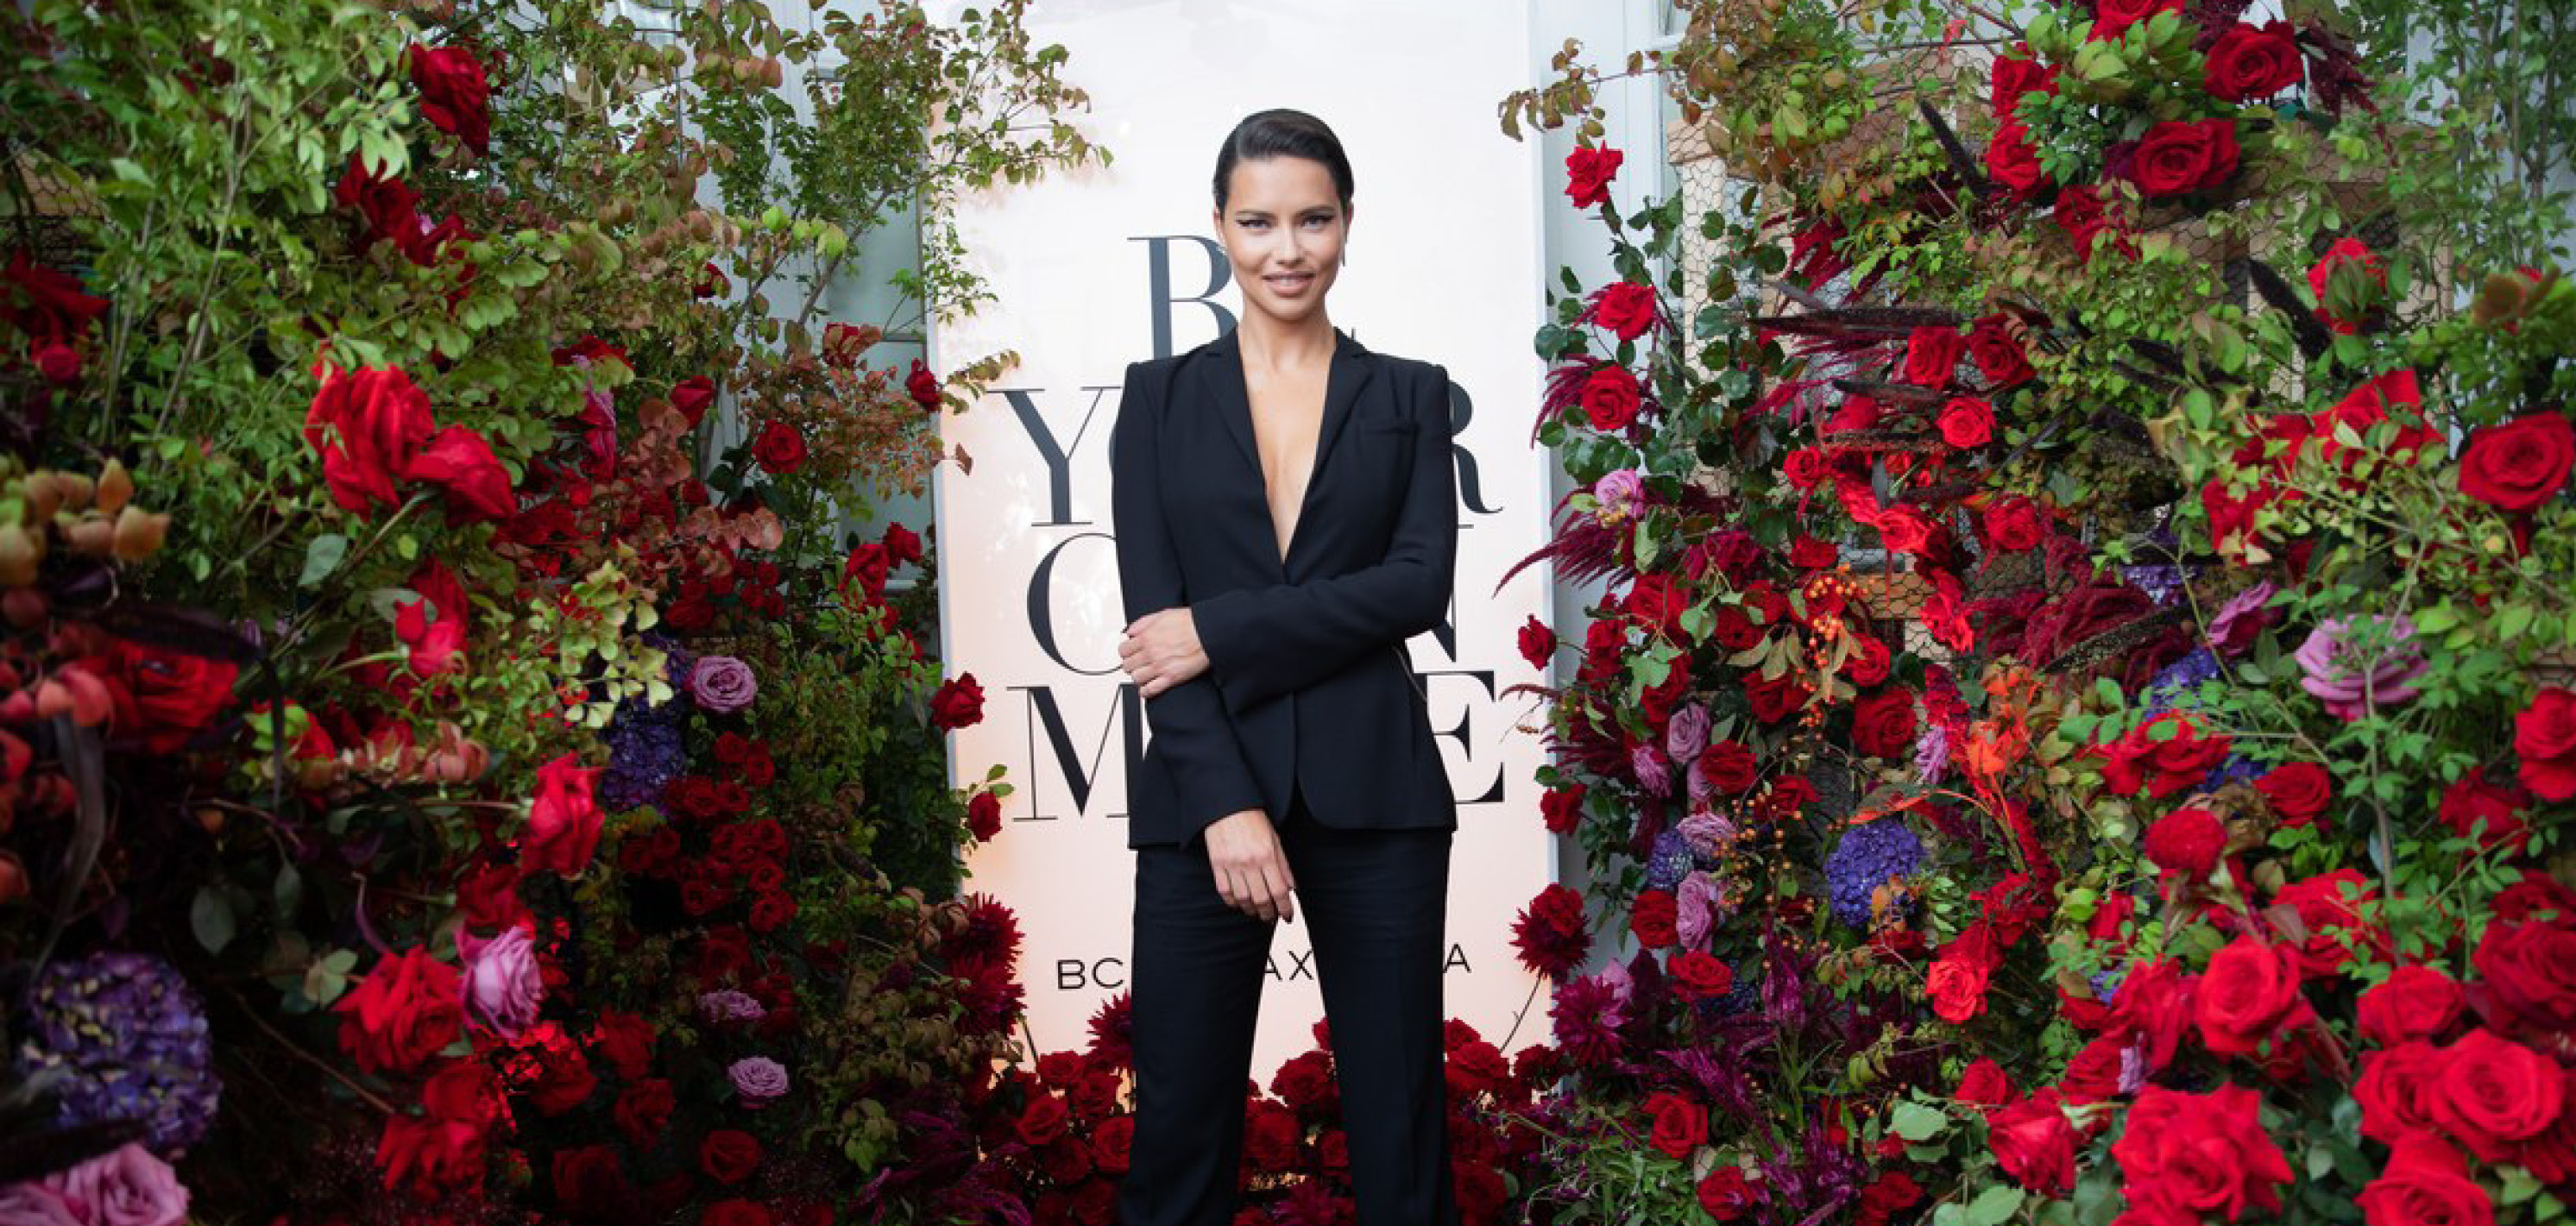 BCBGMAXAZRIA Celebrated 30 Years With a Flower-Filled Anniversary Party Hosted by Adriana Lima